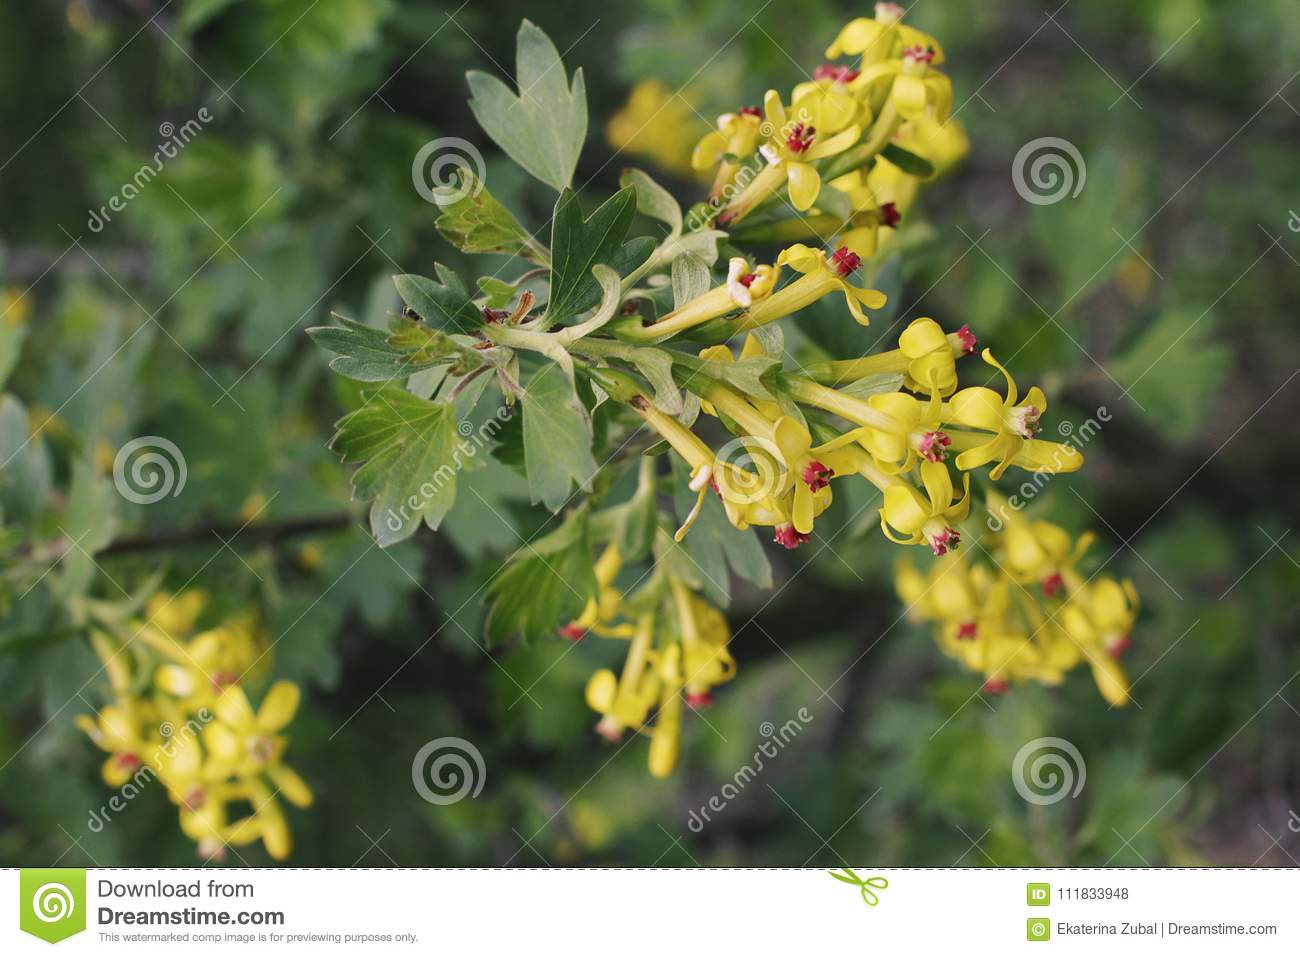 Flowering Bush Of Currant Stock Photo Image Of Yellow 111833948